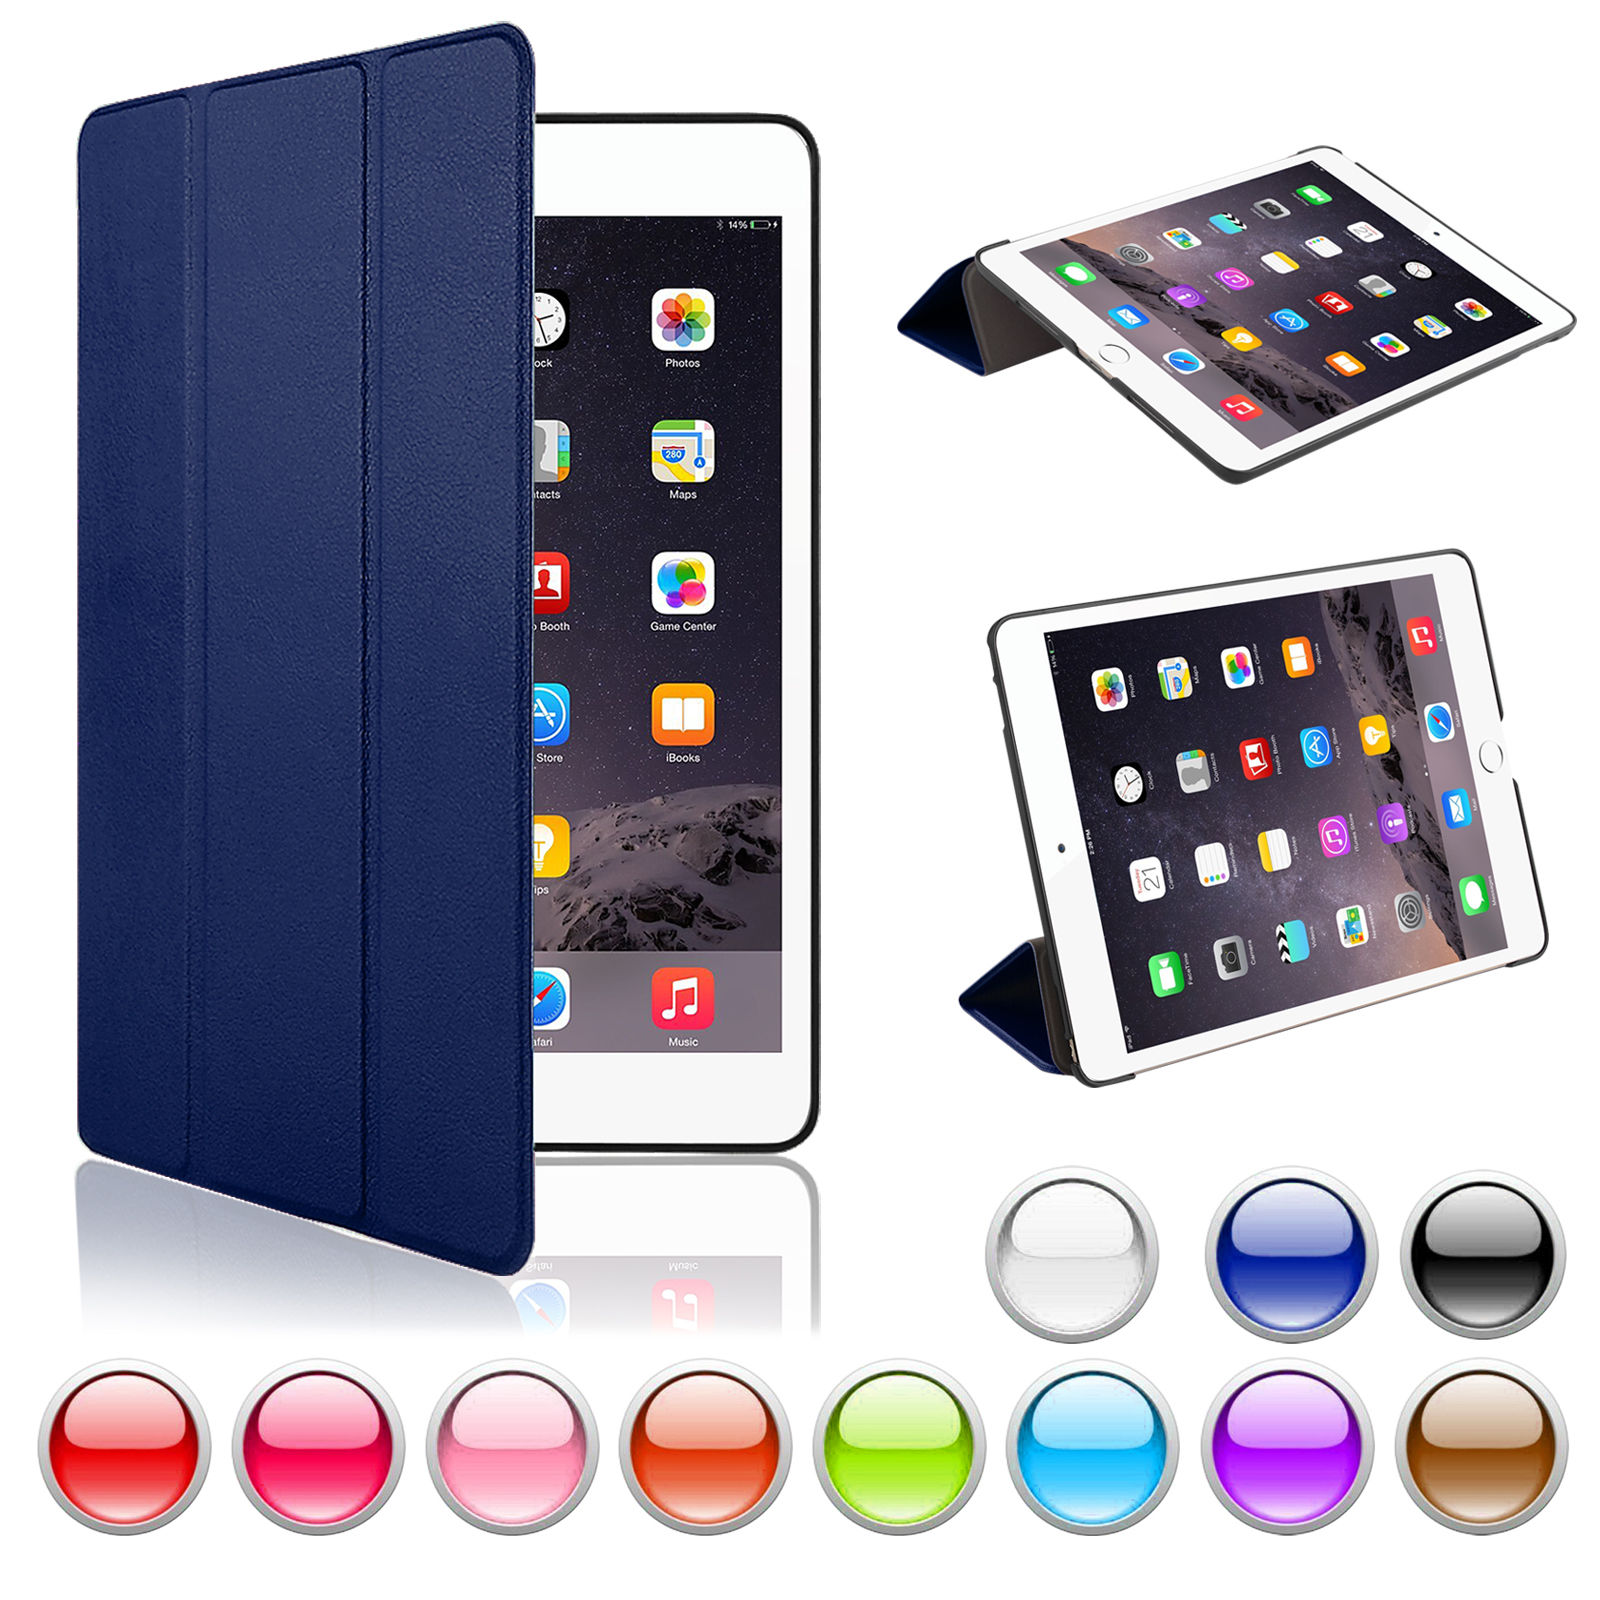 Case For iPad 2 3 4 Leather Case Protective Smart Stand Flip Cover Case for iPad 2 3 4 New Cover Cases A1396 A1397 A1395 360 degrees rotating pu leather cover case for apple ipad 2 3 4 case stand holder cases smart tablet cover a1395 a1396 a1430